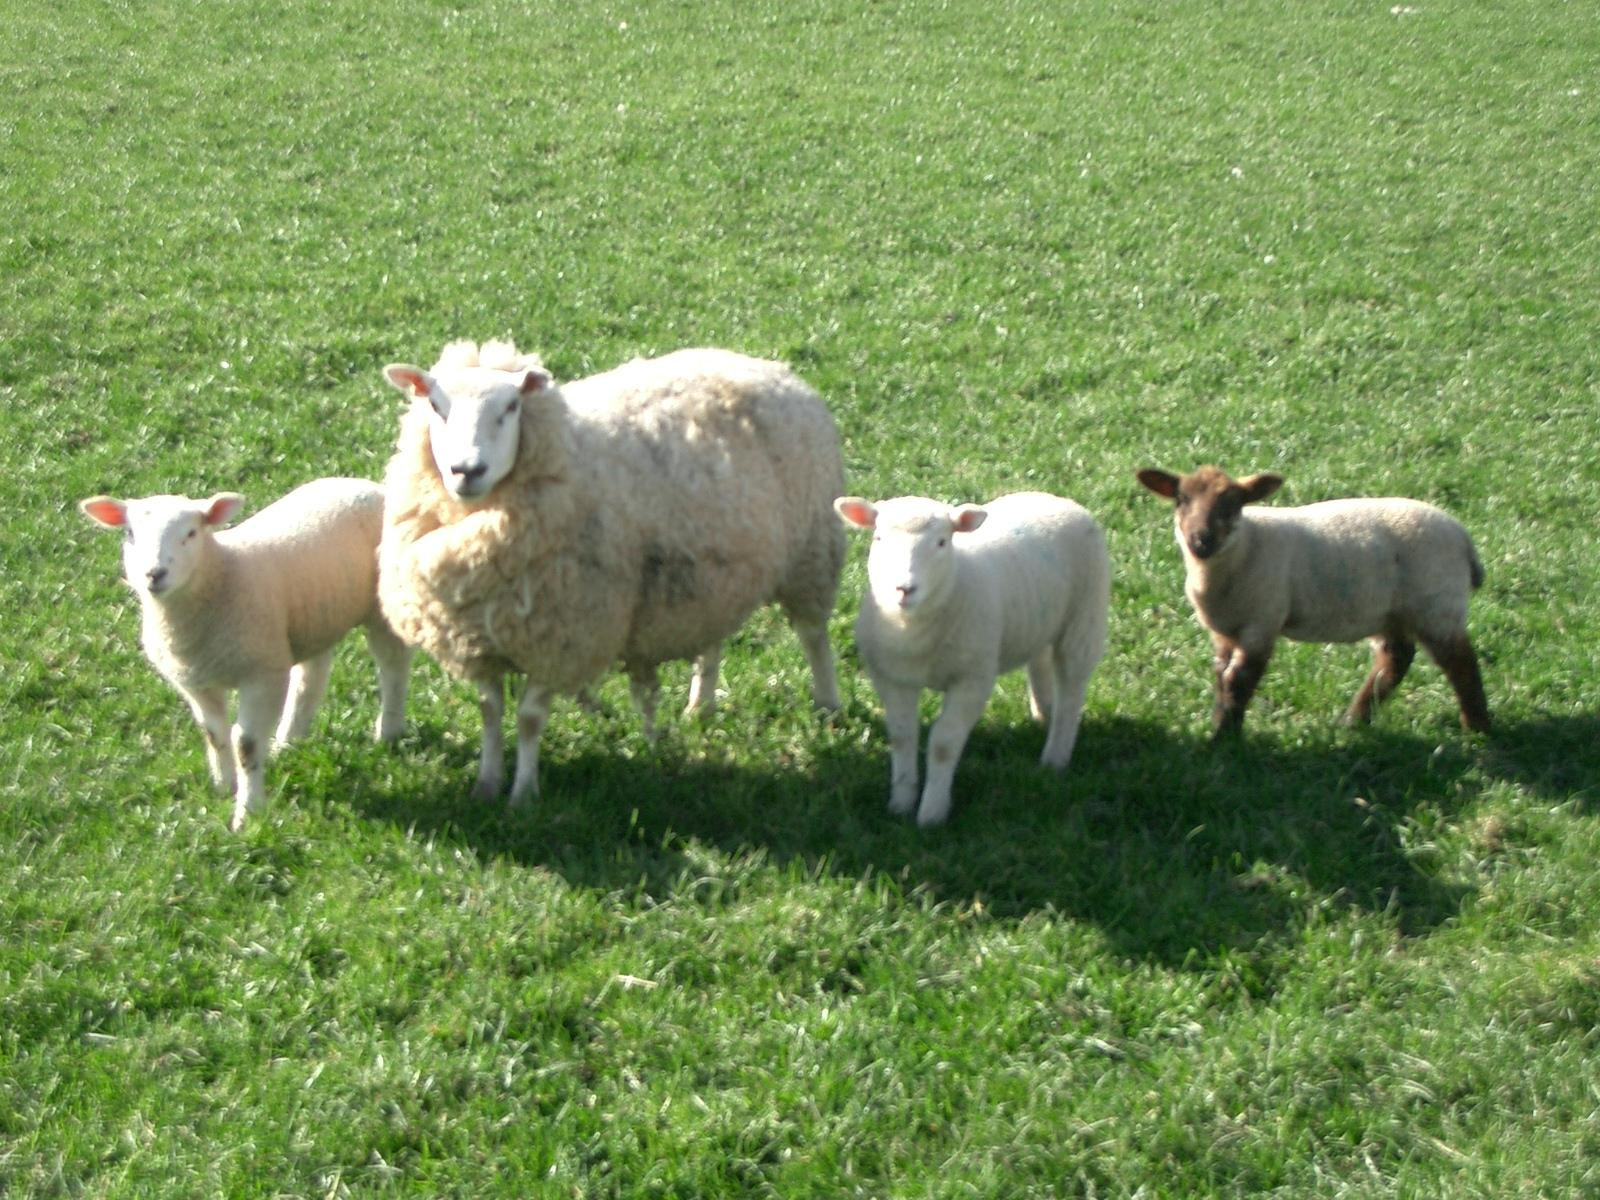 Sheep Wallpapers. Image and animals Sheep pictures